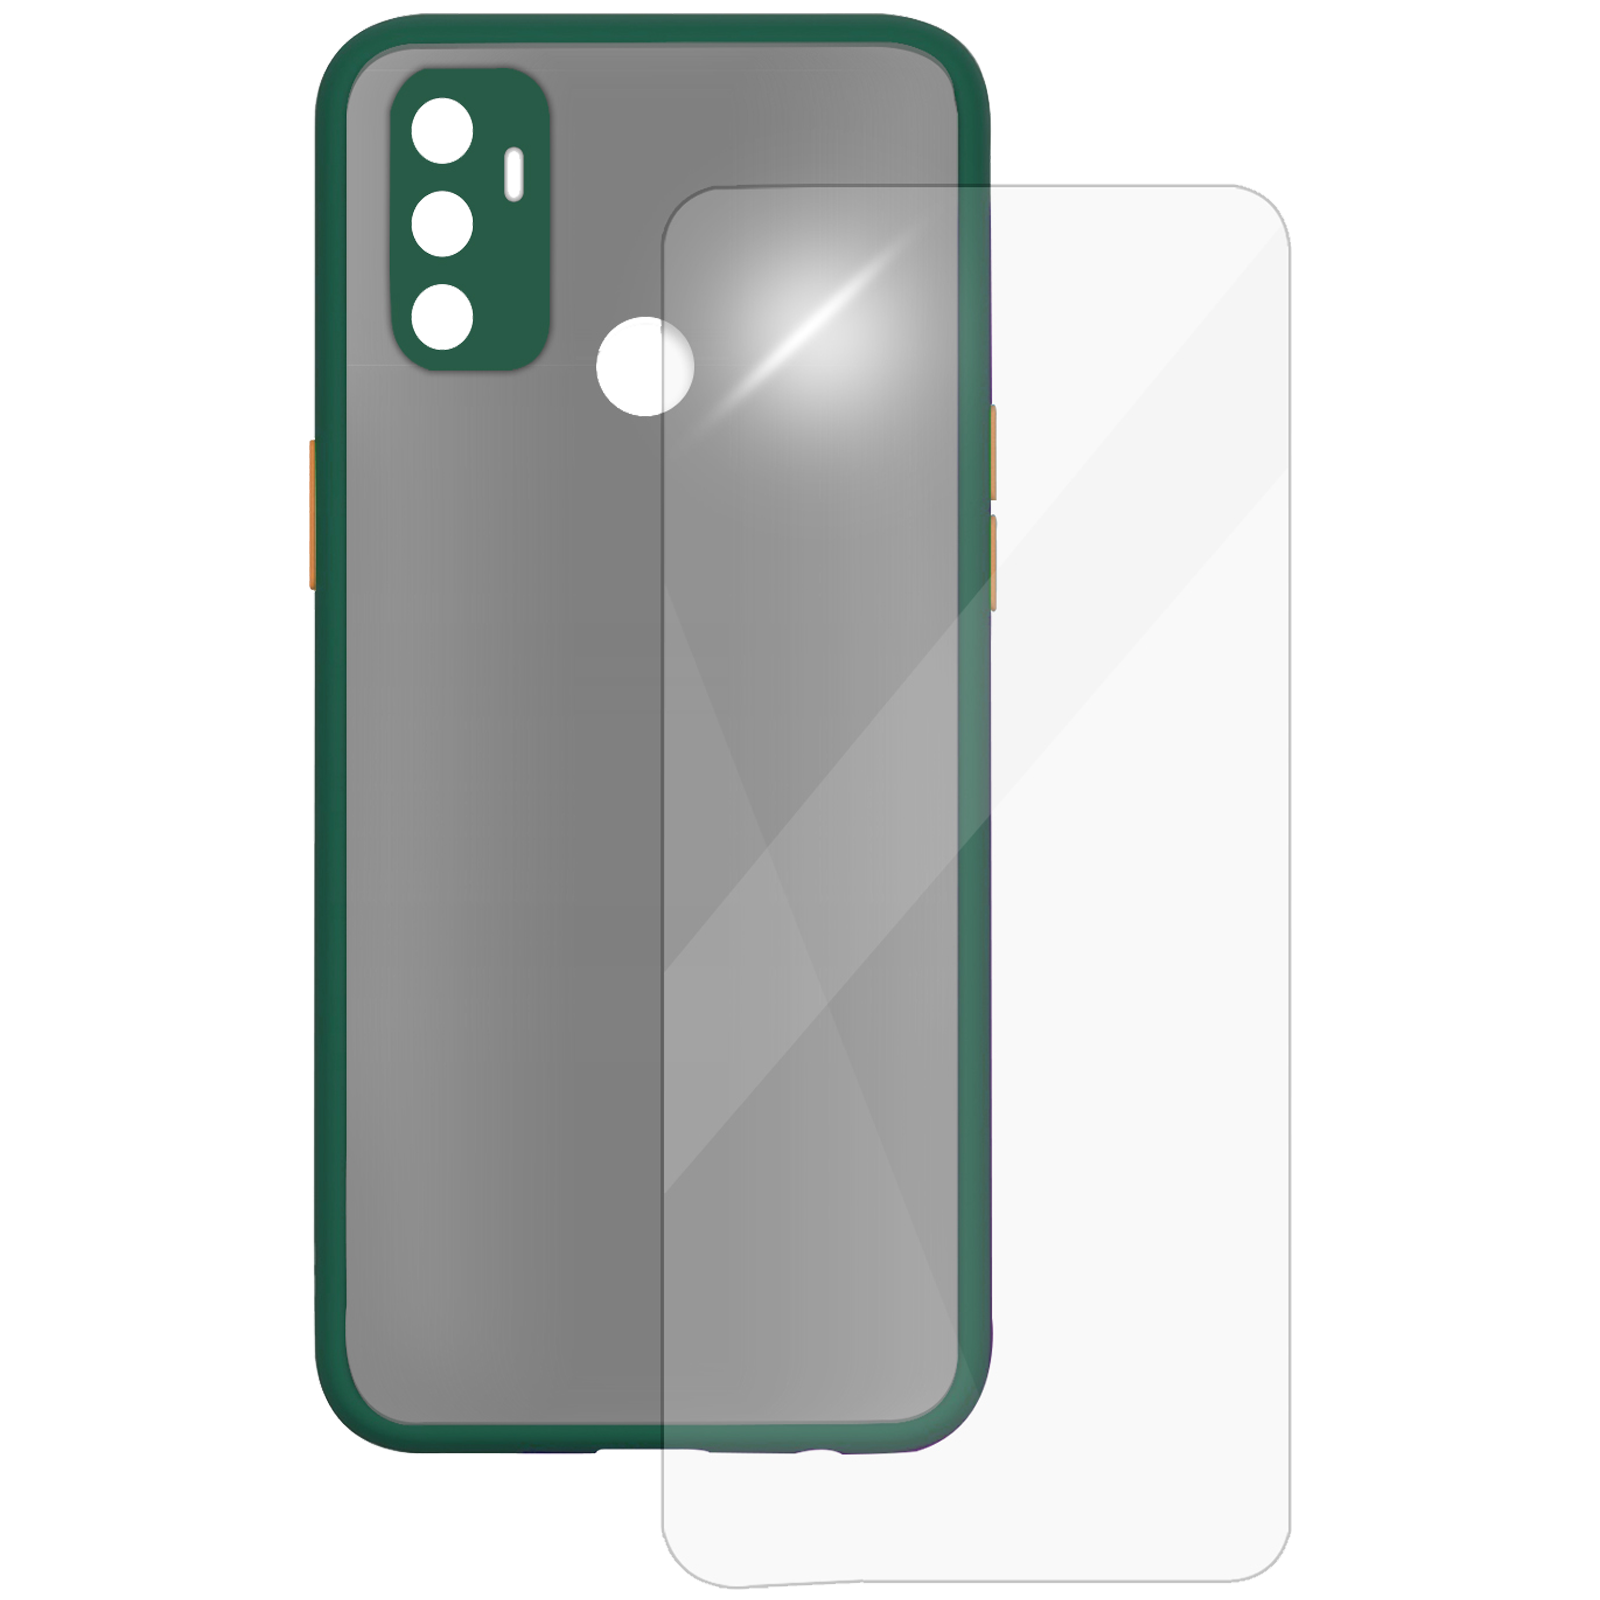 Arrow Camera Duplex Back Case and Screen Protector Bundle For Oppo A53 (Ultra Transparent Visibility, AR-961, Dark Green)_1